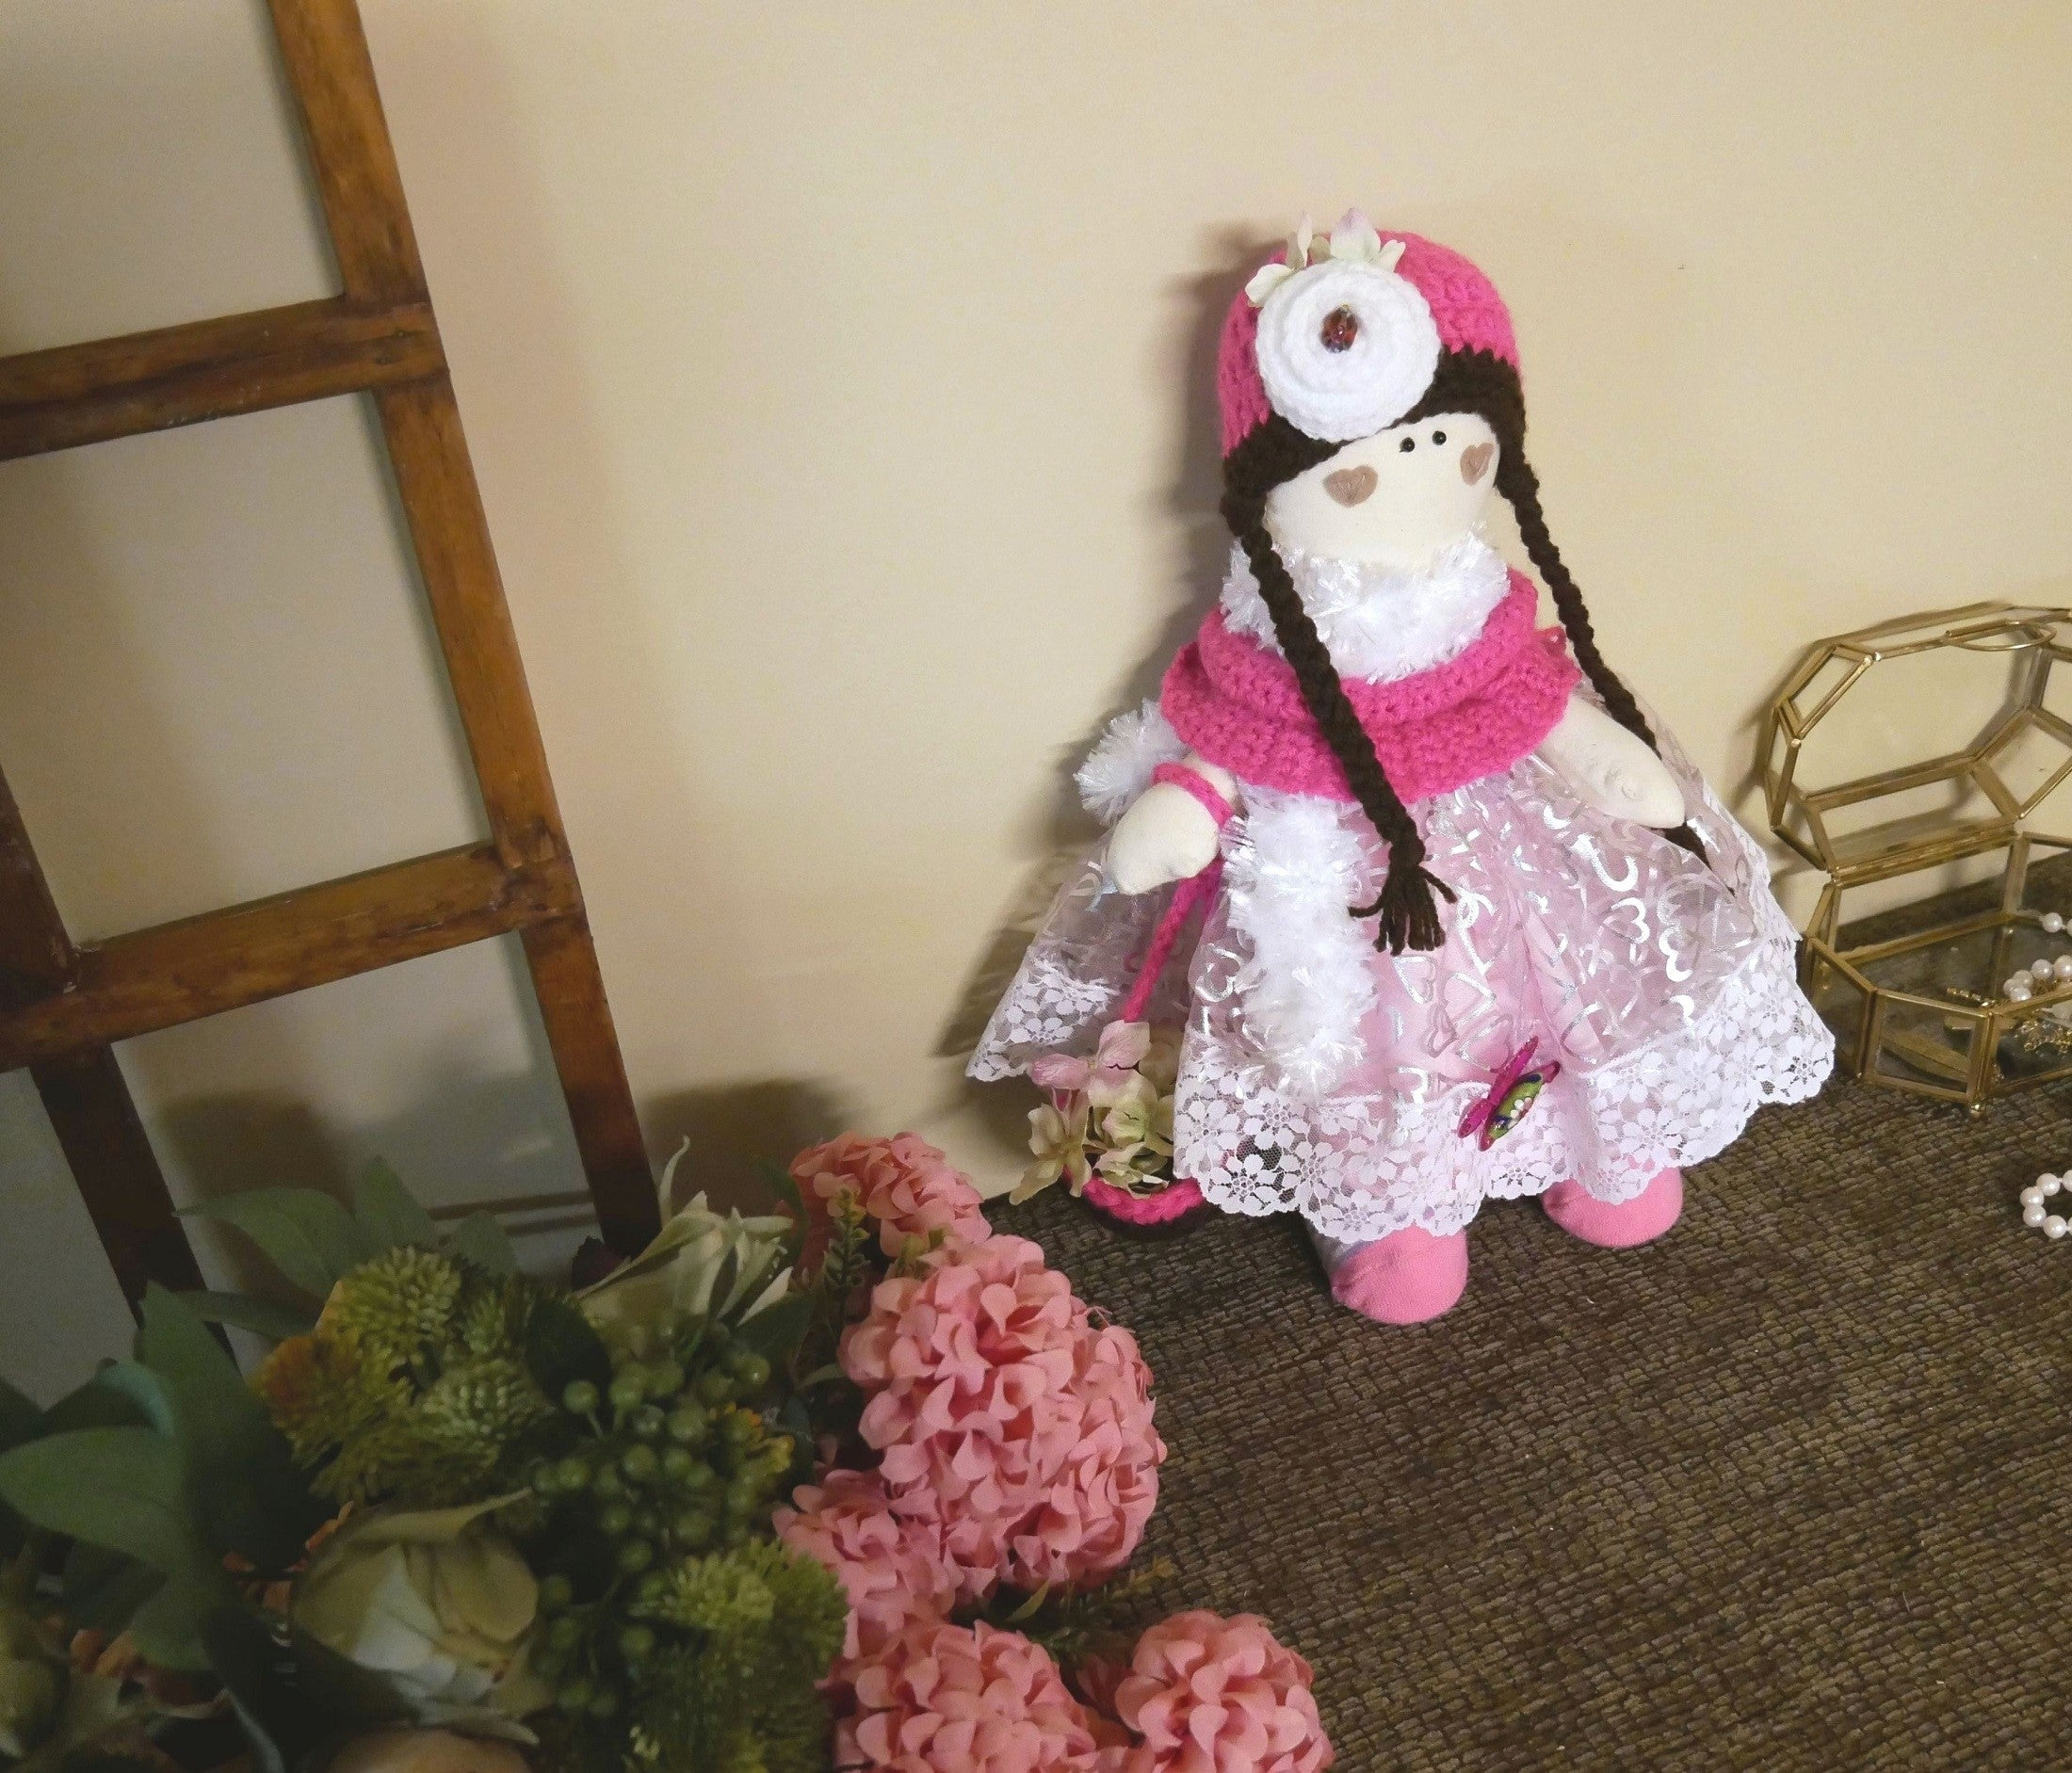 Collectable-Doll-Nchanted-Gifts